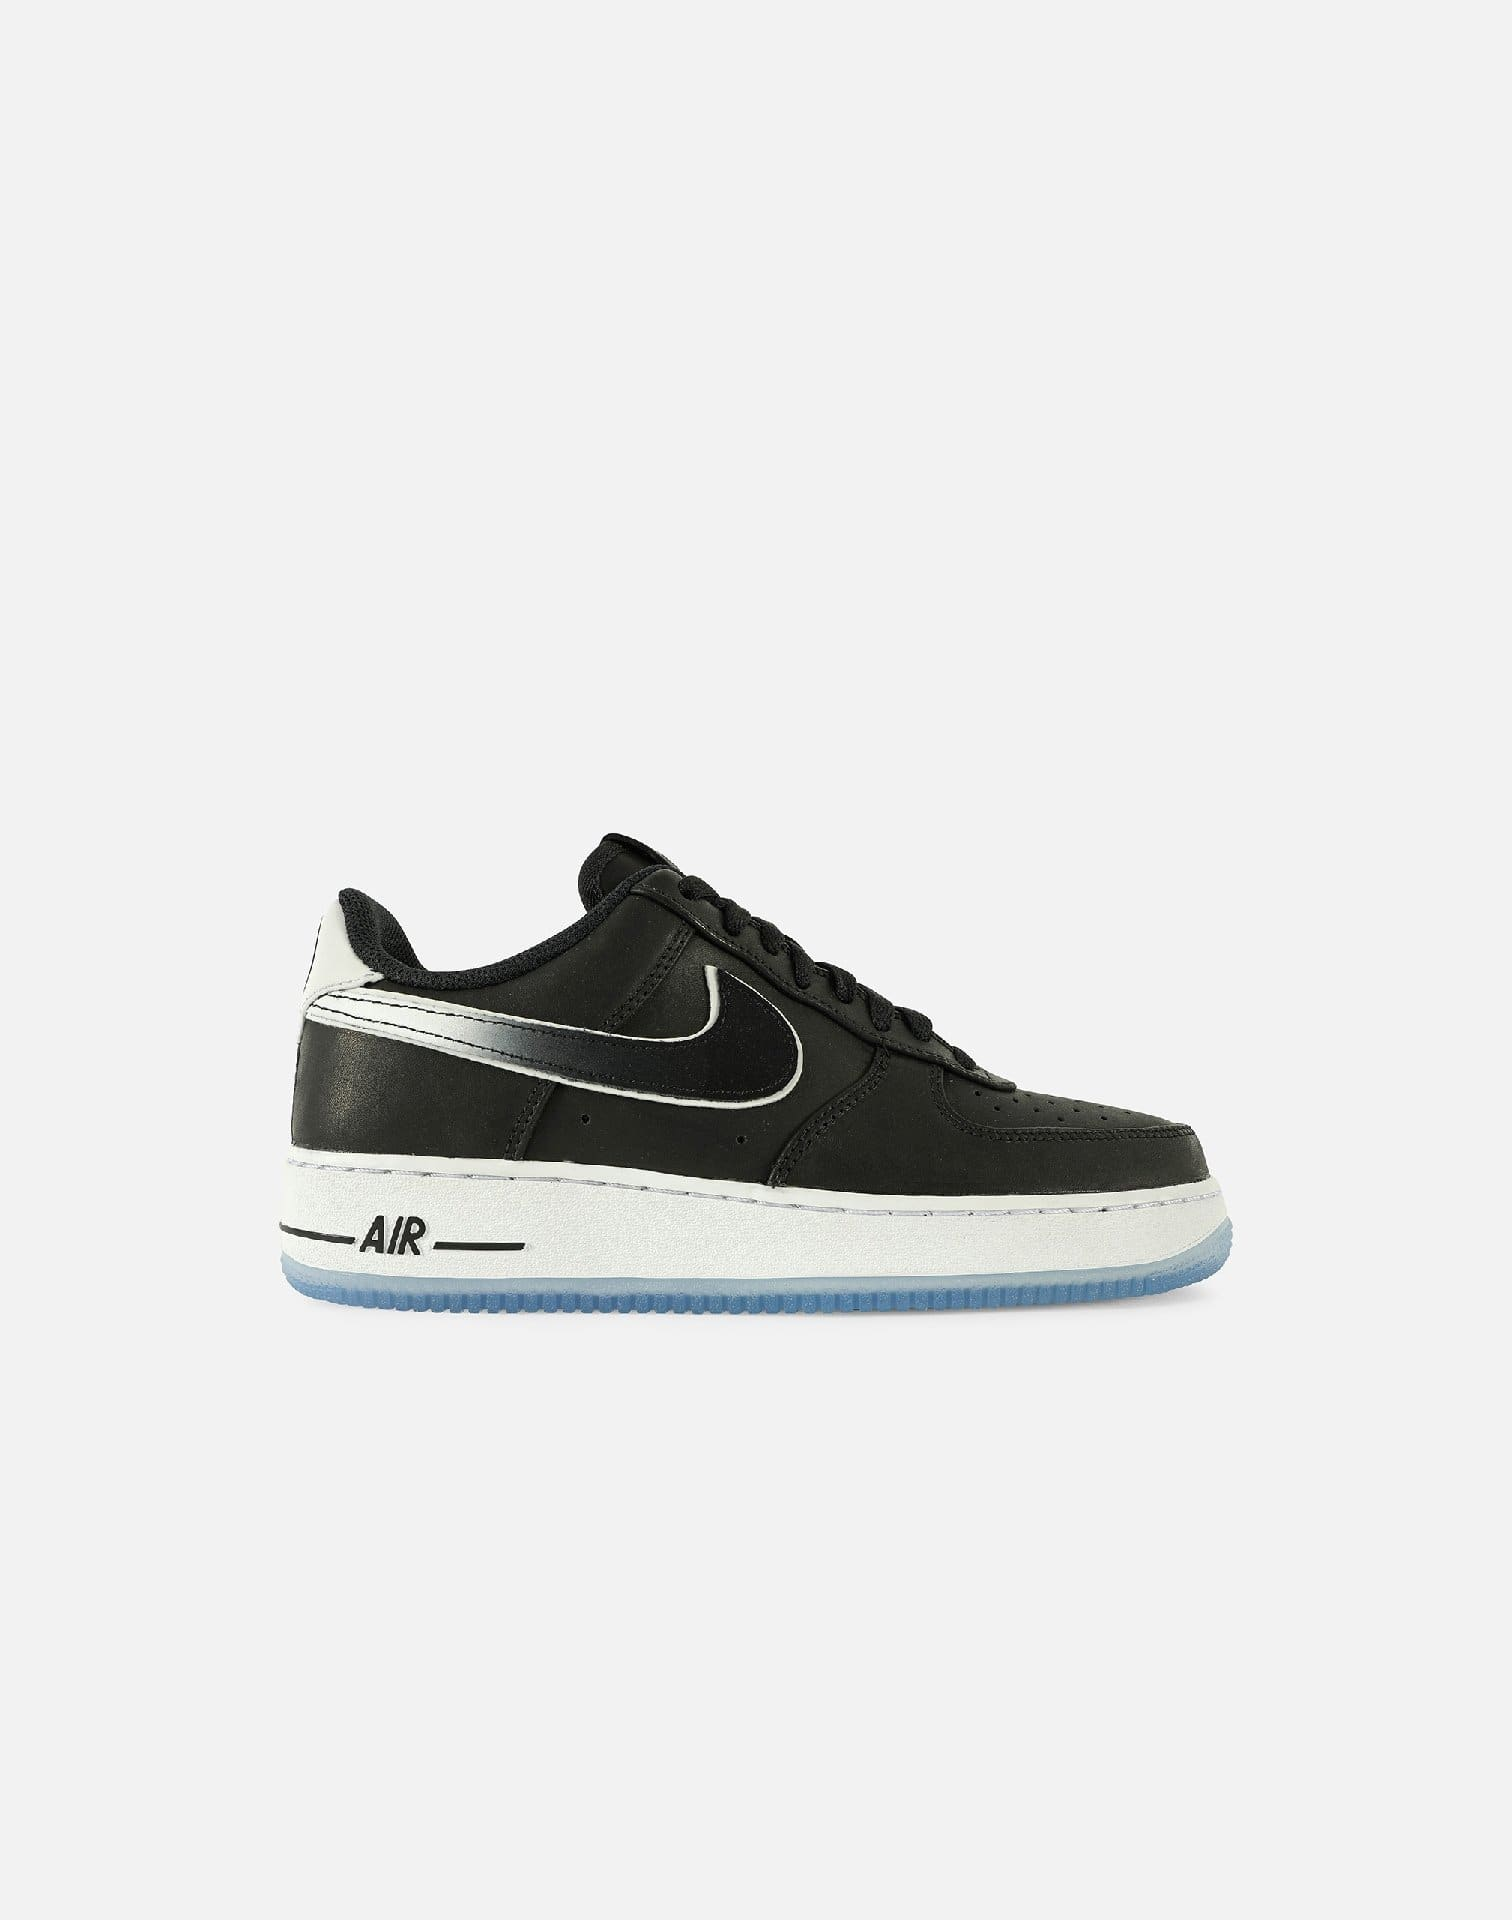 Nike AIR FORCE 1 '07 LOW CK QS GRADE-SCHOOL